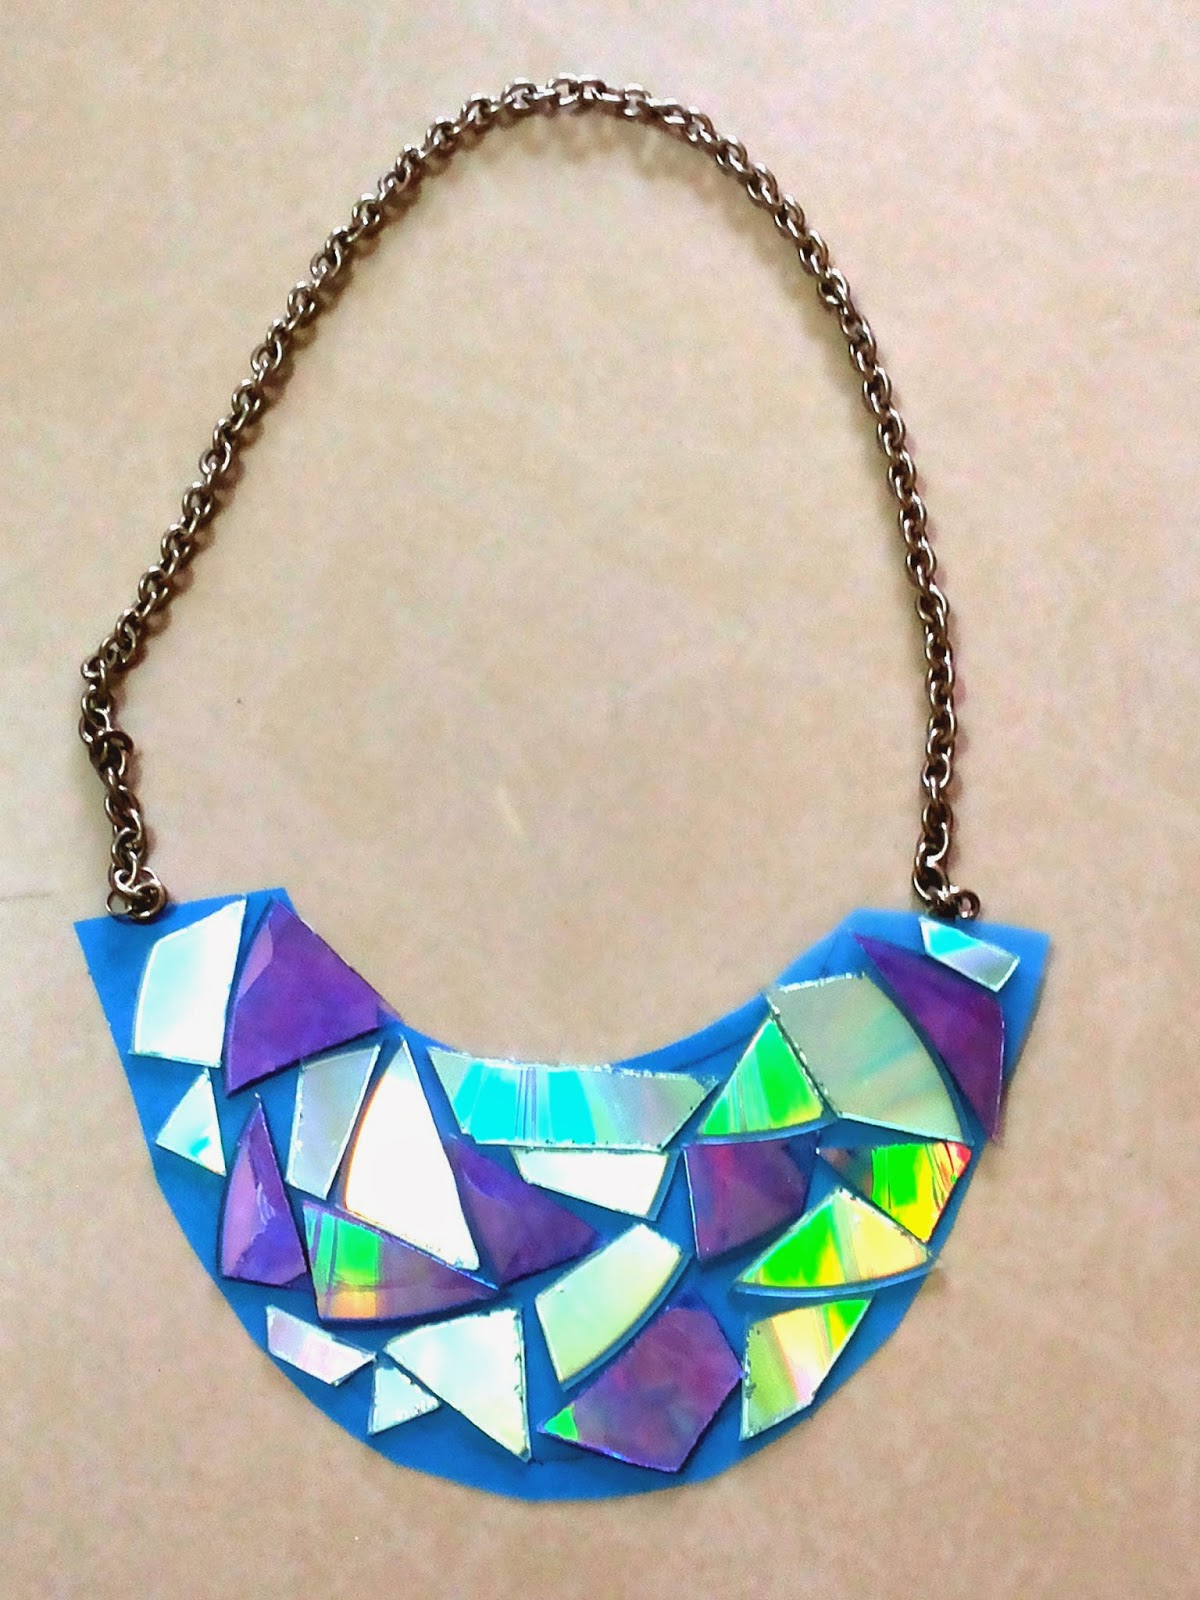 mirror necklace. tip : flaunt this dazzling necklace from day to night and see the reflective mirrors change color. mirror e